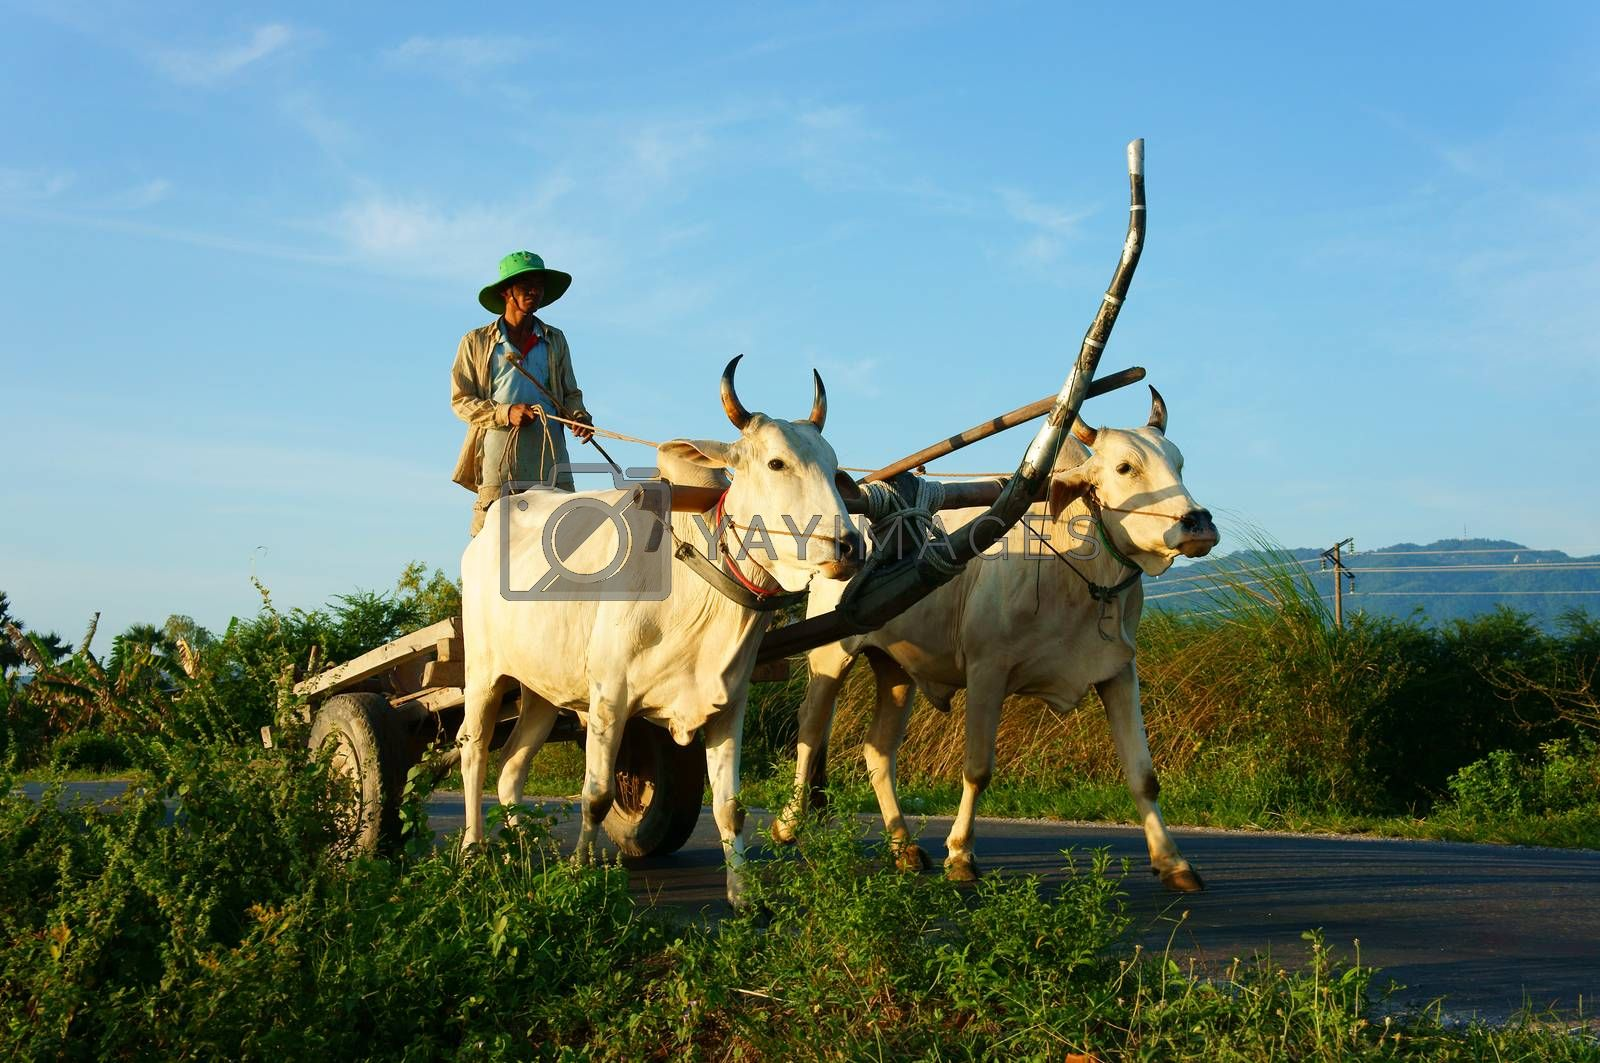 CHAU DOC, VIET NAM- SEP 20: Amazing landscape of Vietnamese rural in morning,  ride wagon move on country road, beautiful white couple cow pull cart  with Asian man standing on, Vietnam, Sept 20, 2014